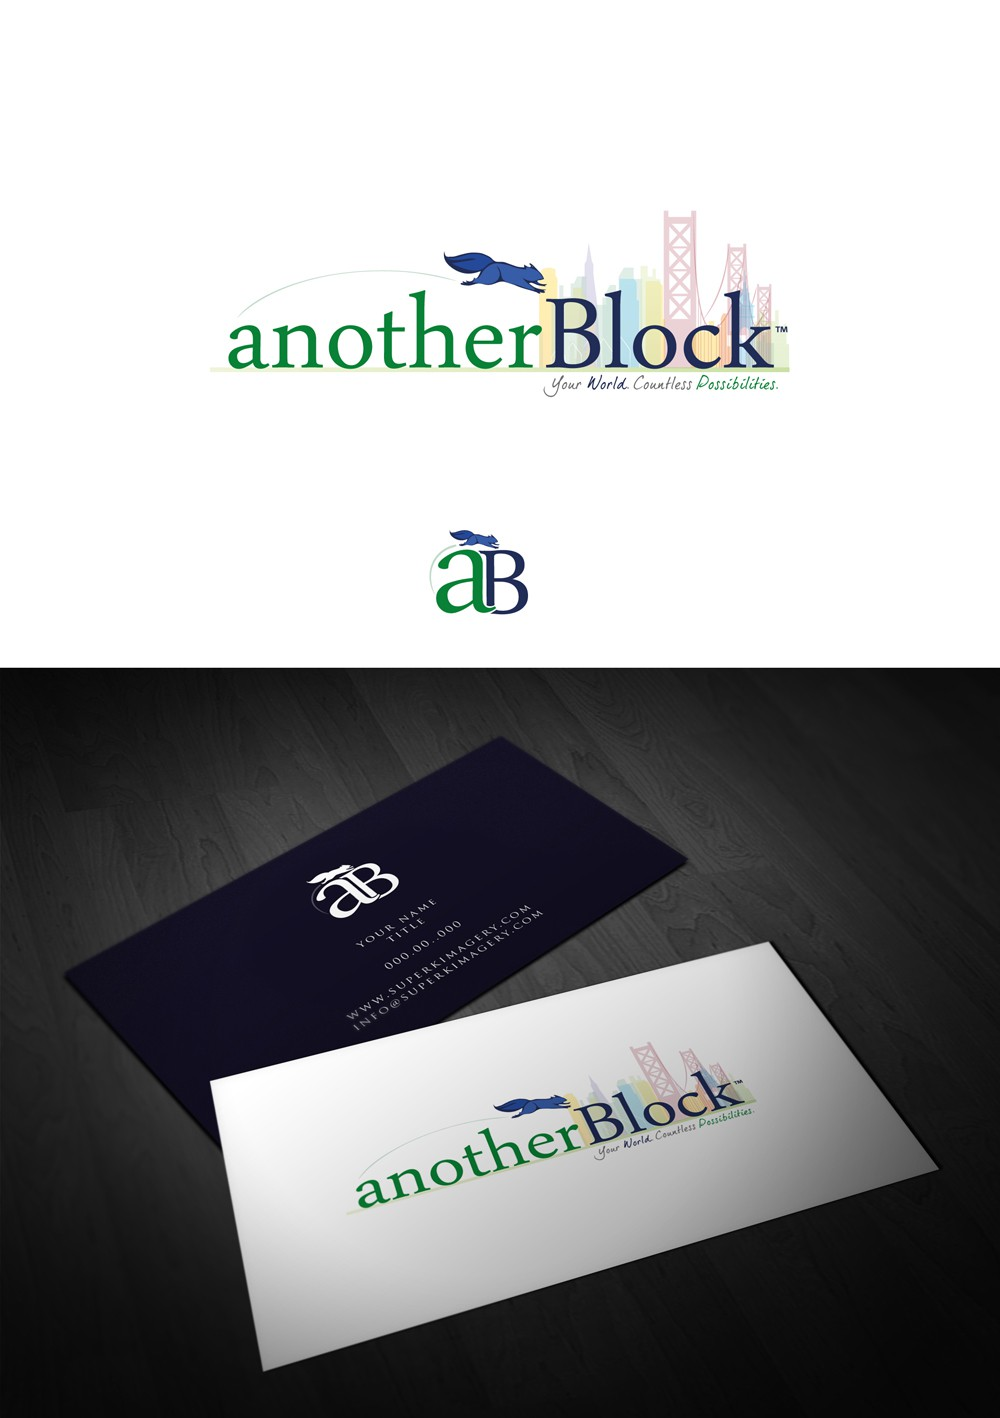 anotherBlock Logo Design